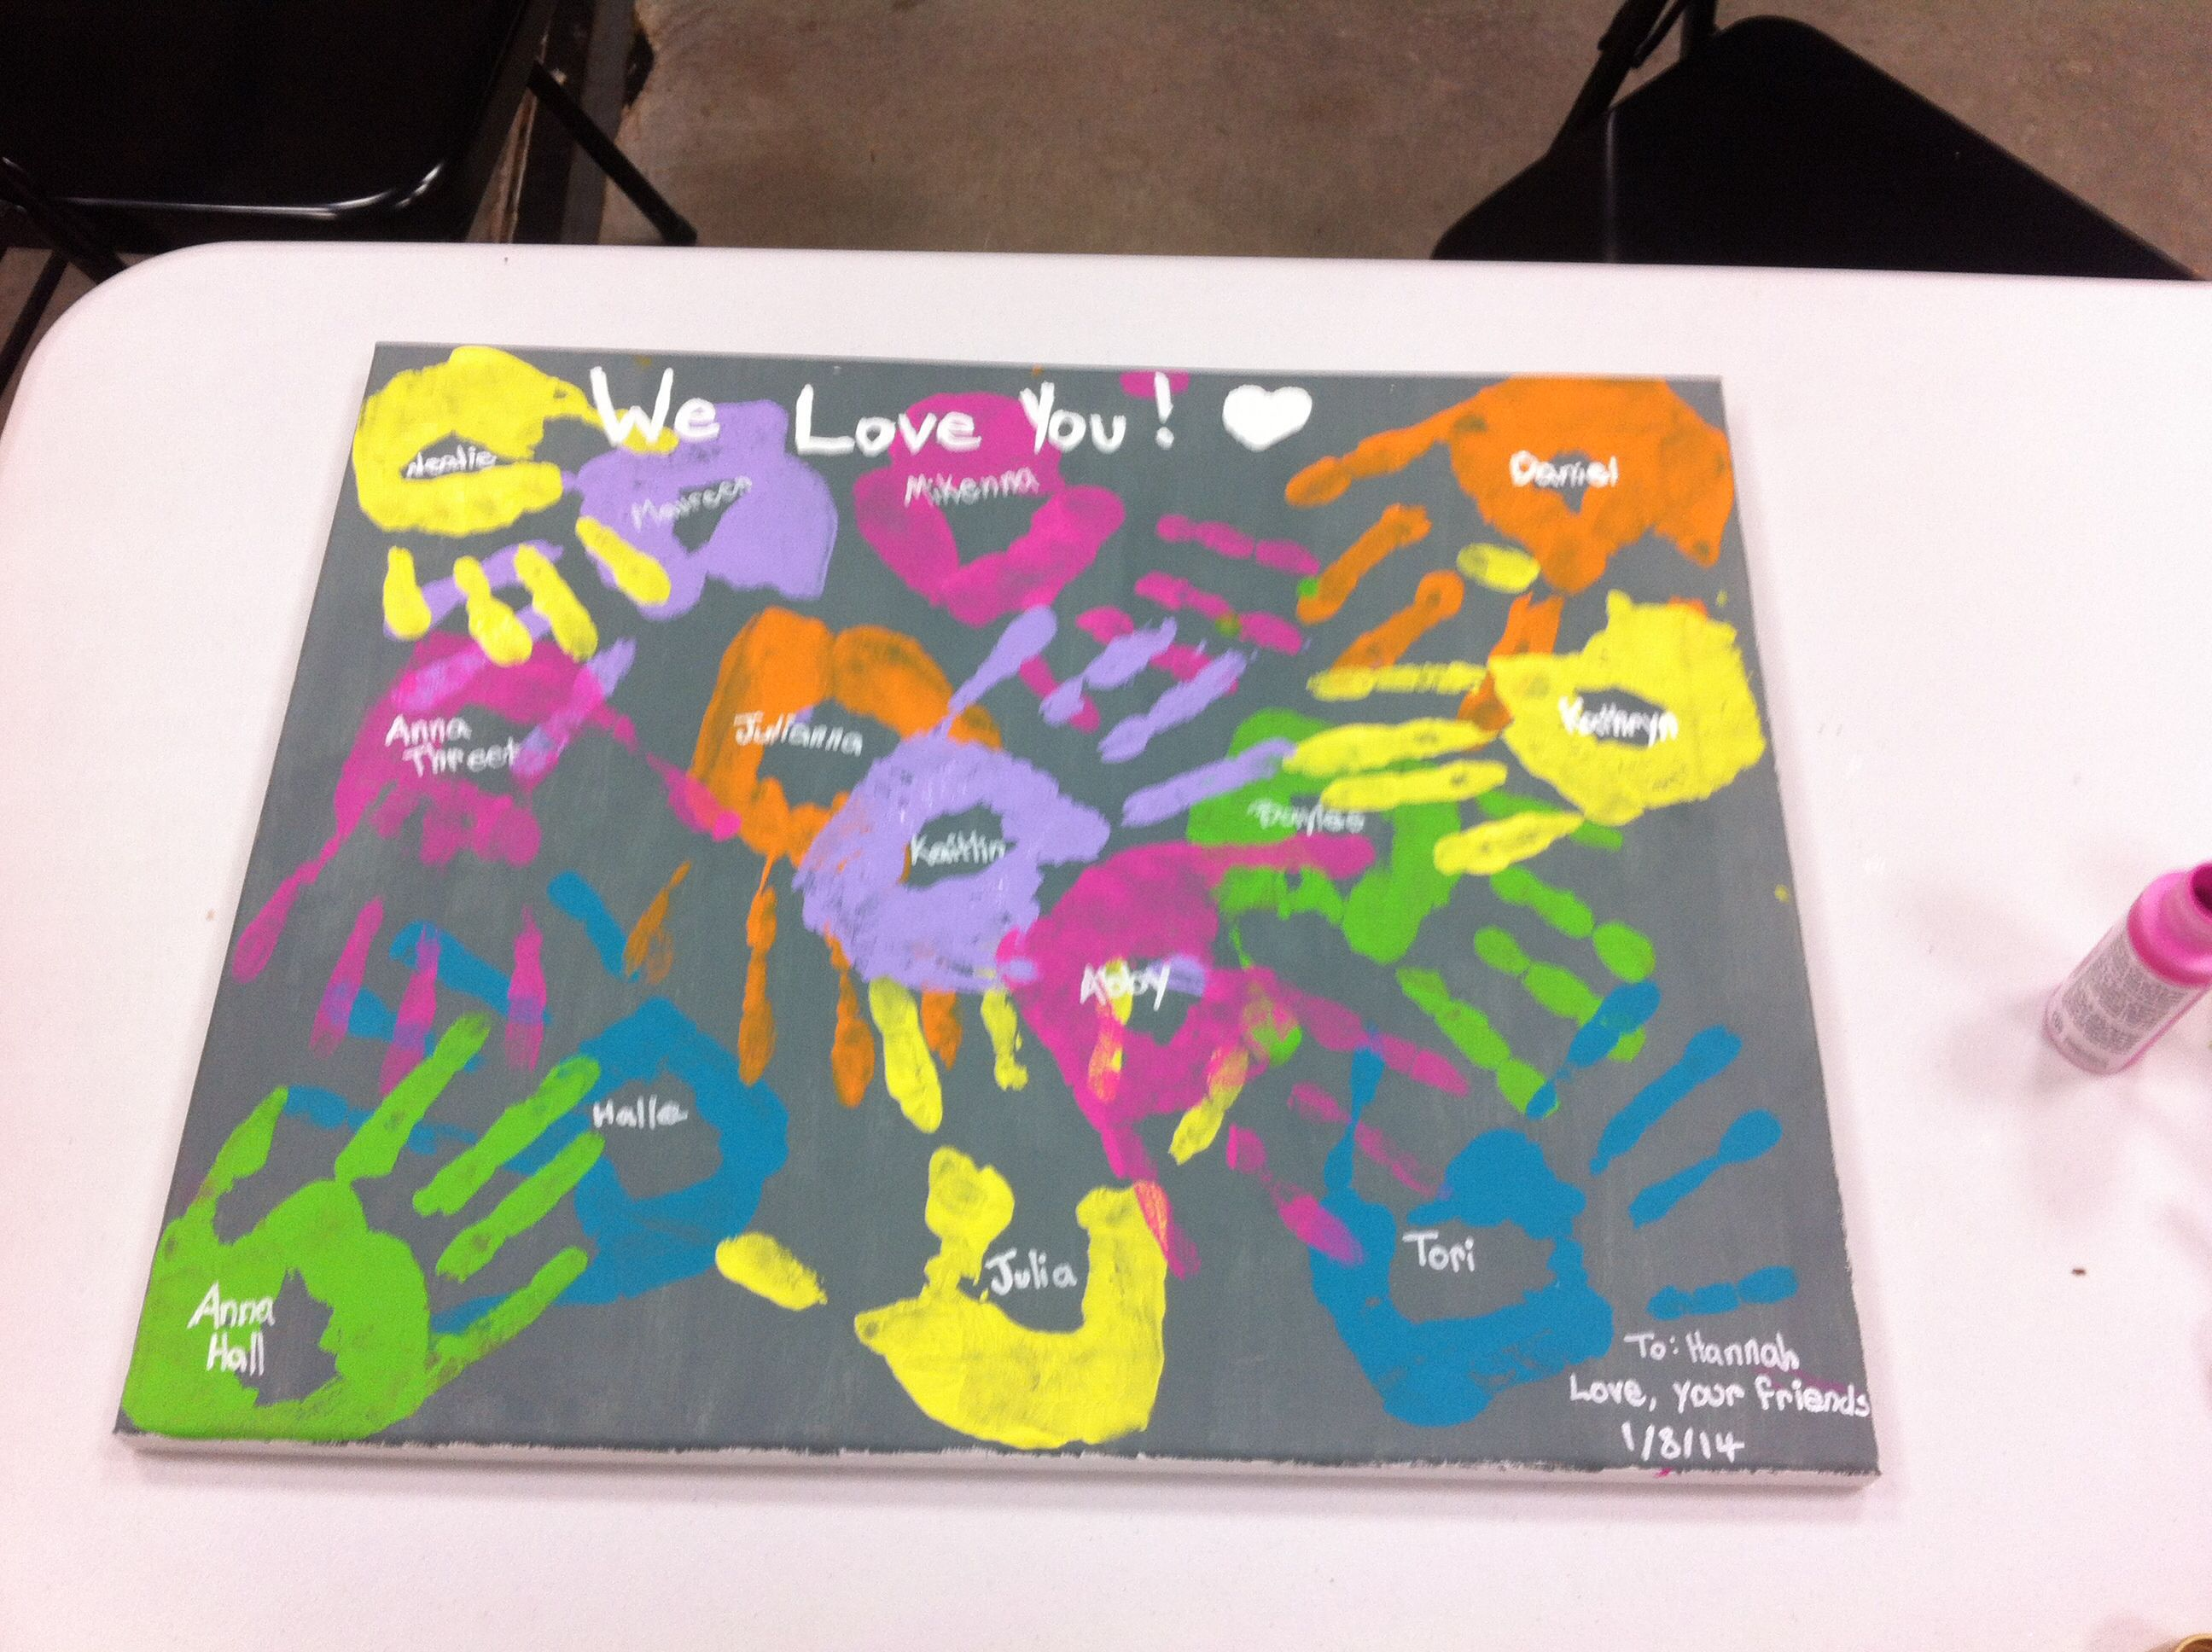 Farewell ideas for coworkers - Goodbye Gift For A Girl Have All Her Friends Put Their Handprints And Name On